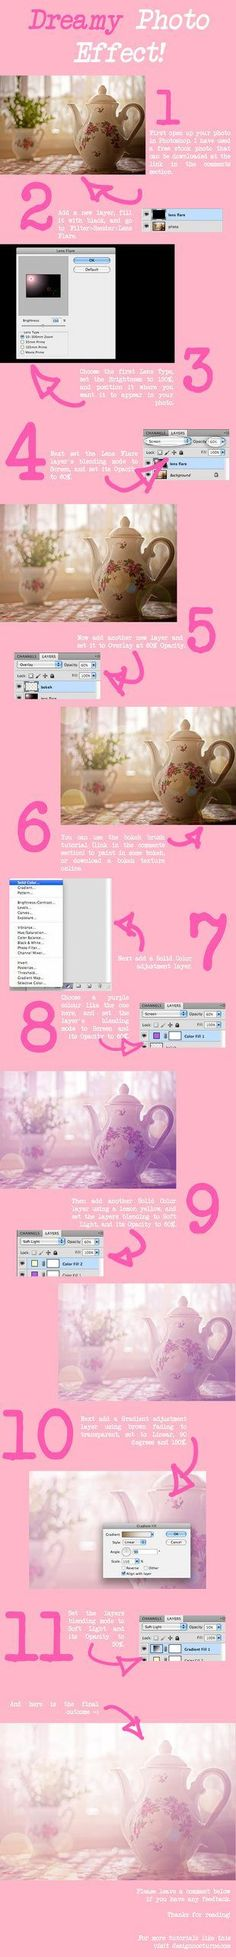 Dreamy Photo Effect Tutorial by ~Planet37 on deviantART